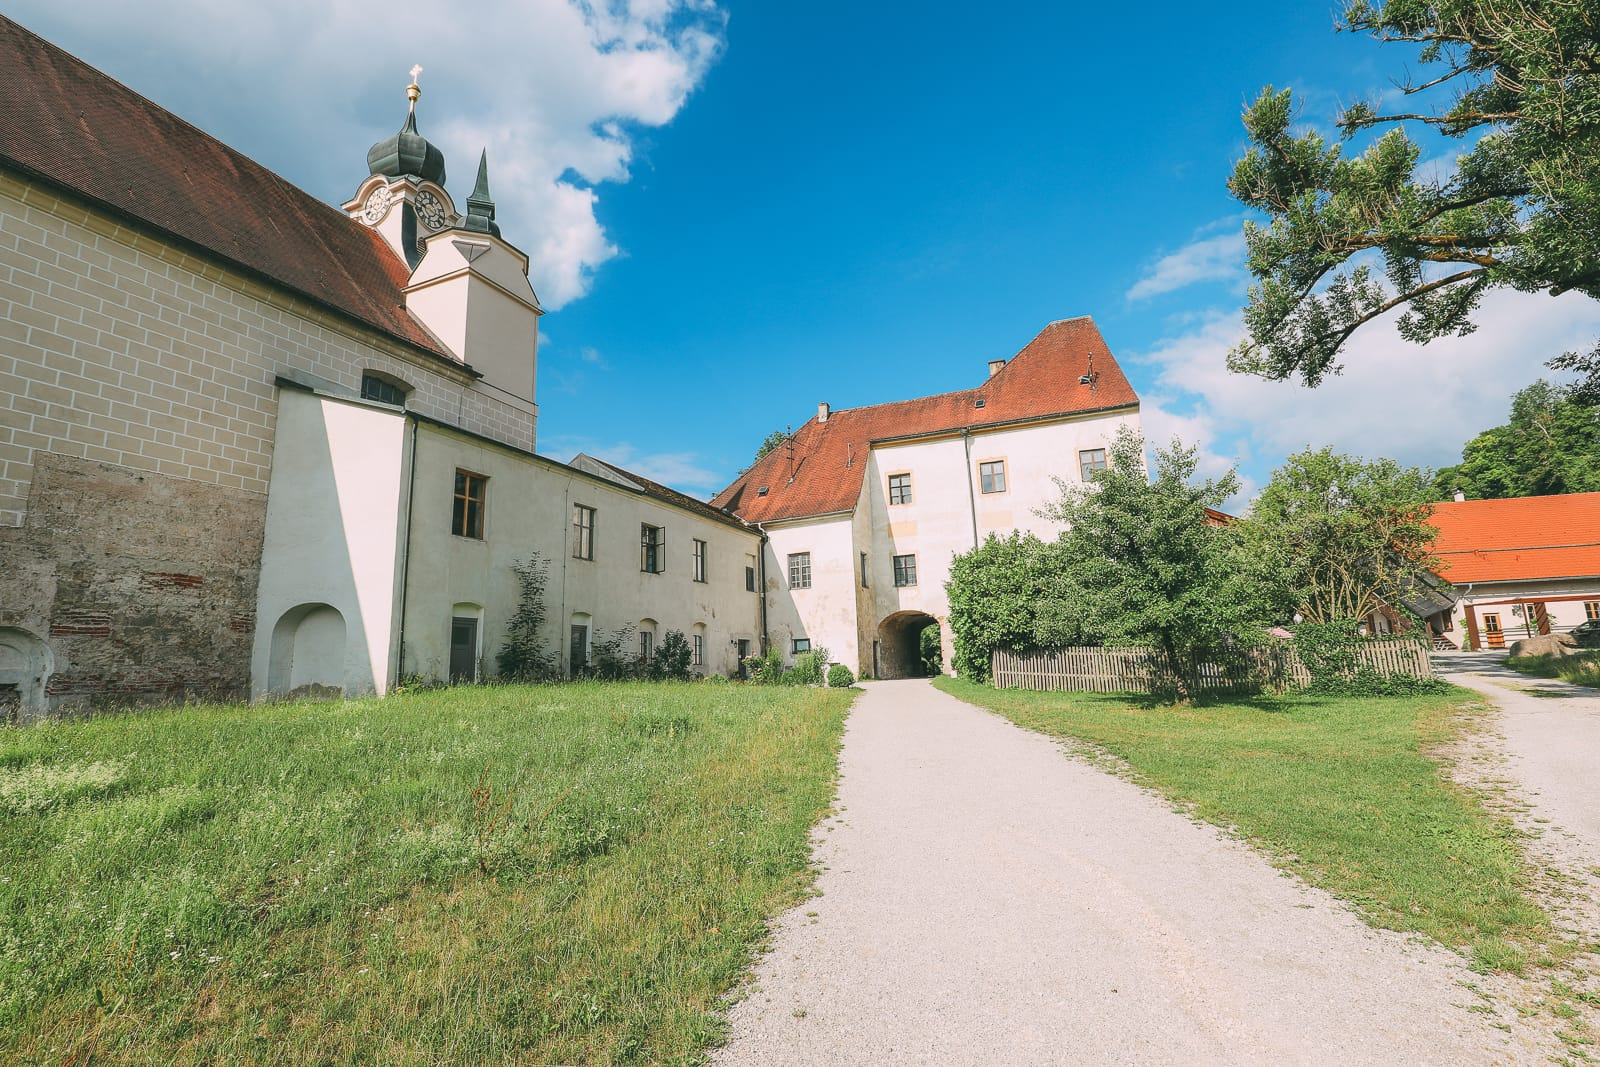 Burghausen Castle - The Longest Castle In The Entire World! (10)